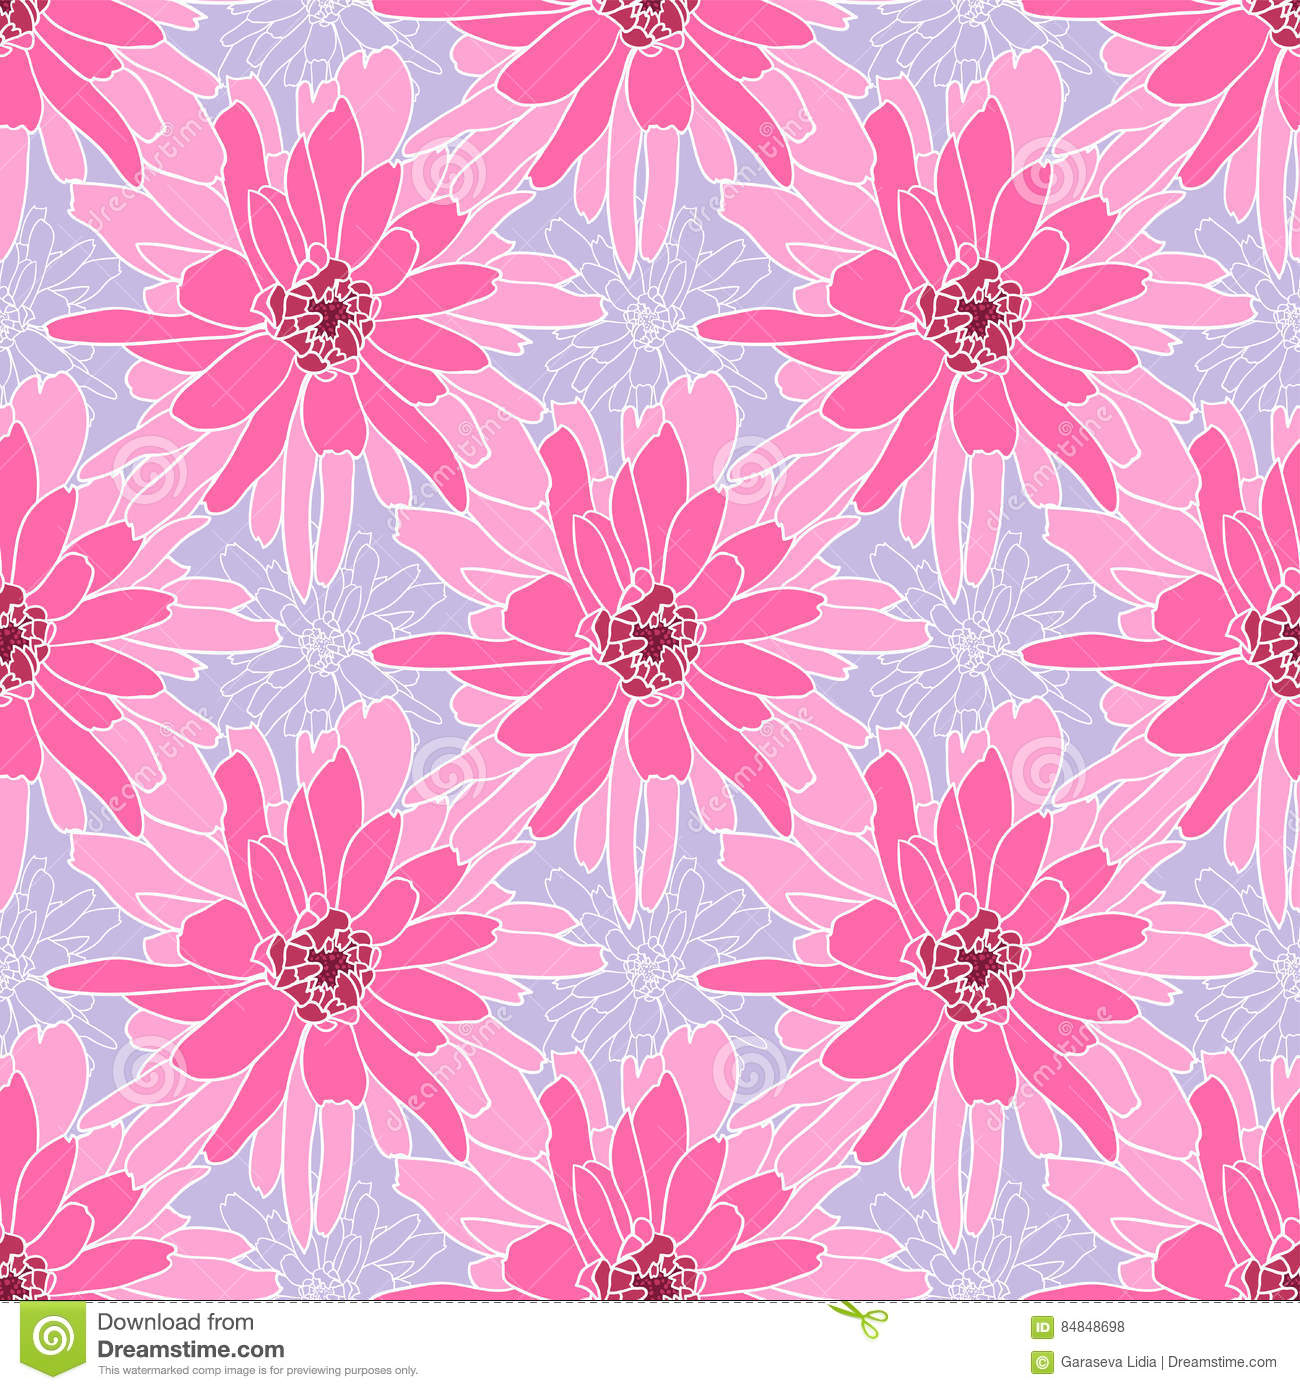 Pink floral seamless vector background floral hrysanthemum seamless - Seamless Floral Pattern With Rosy Chrysanthemum Stock Vector